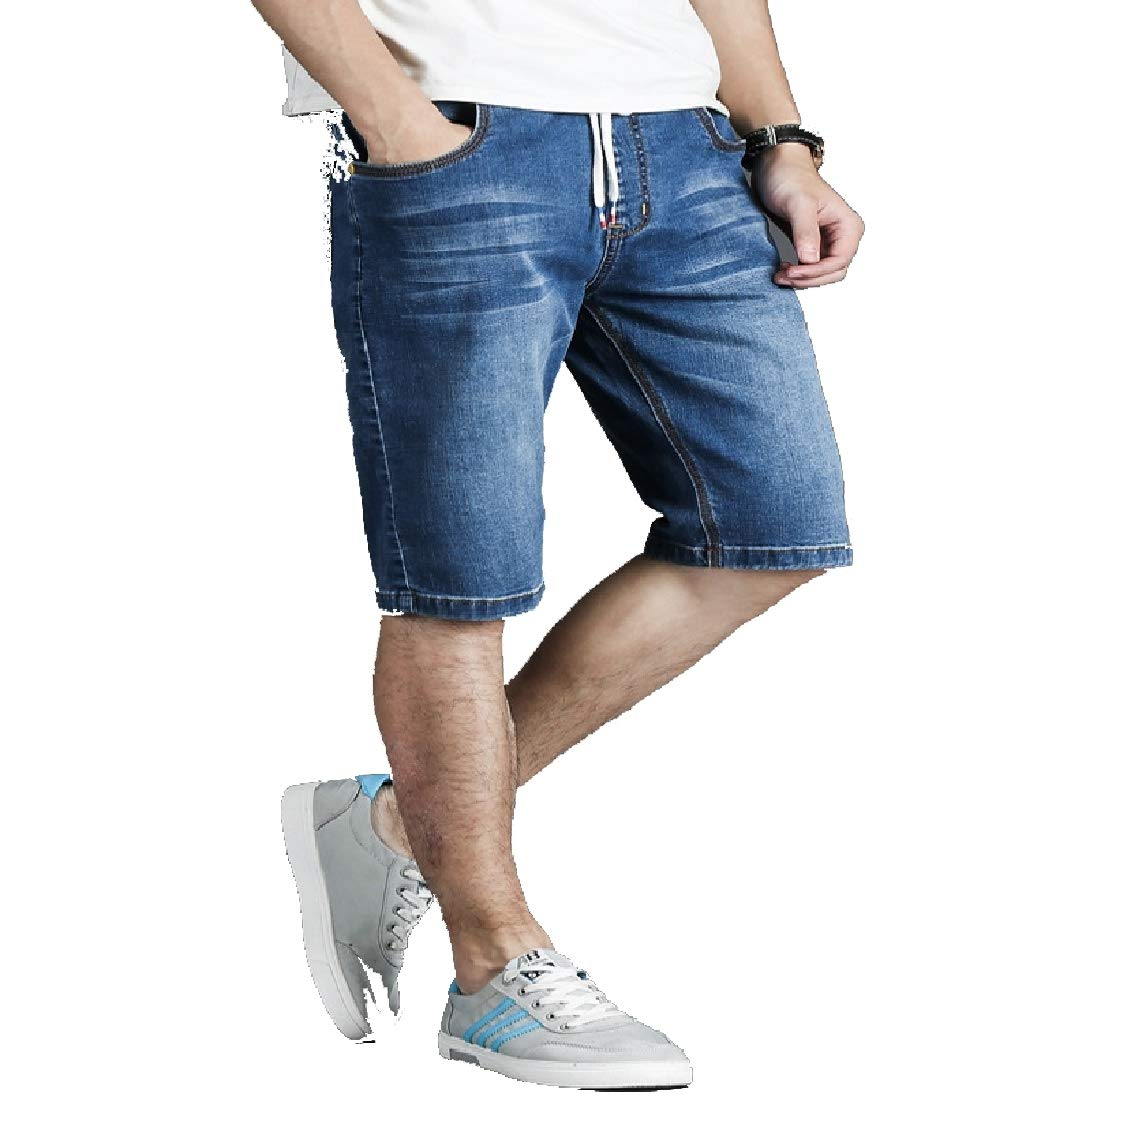 DressU Mens Plus Size Relaxed-Fit Washed Distressed with Pocket Jean Trousers